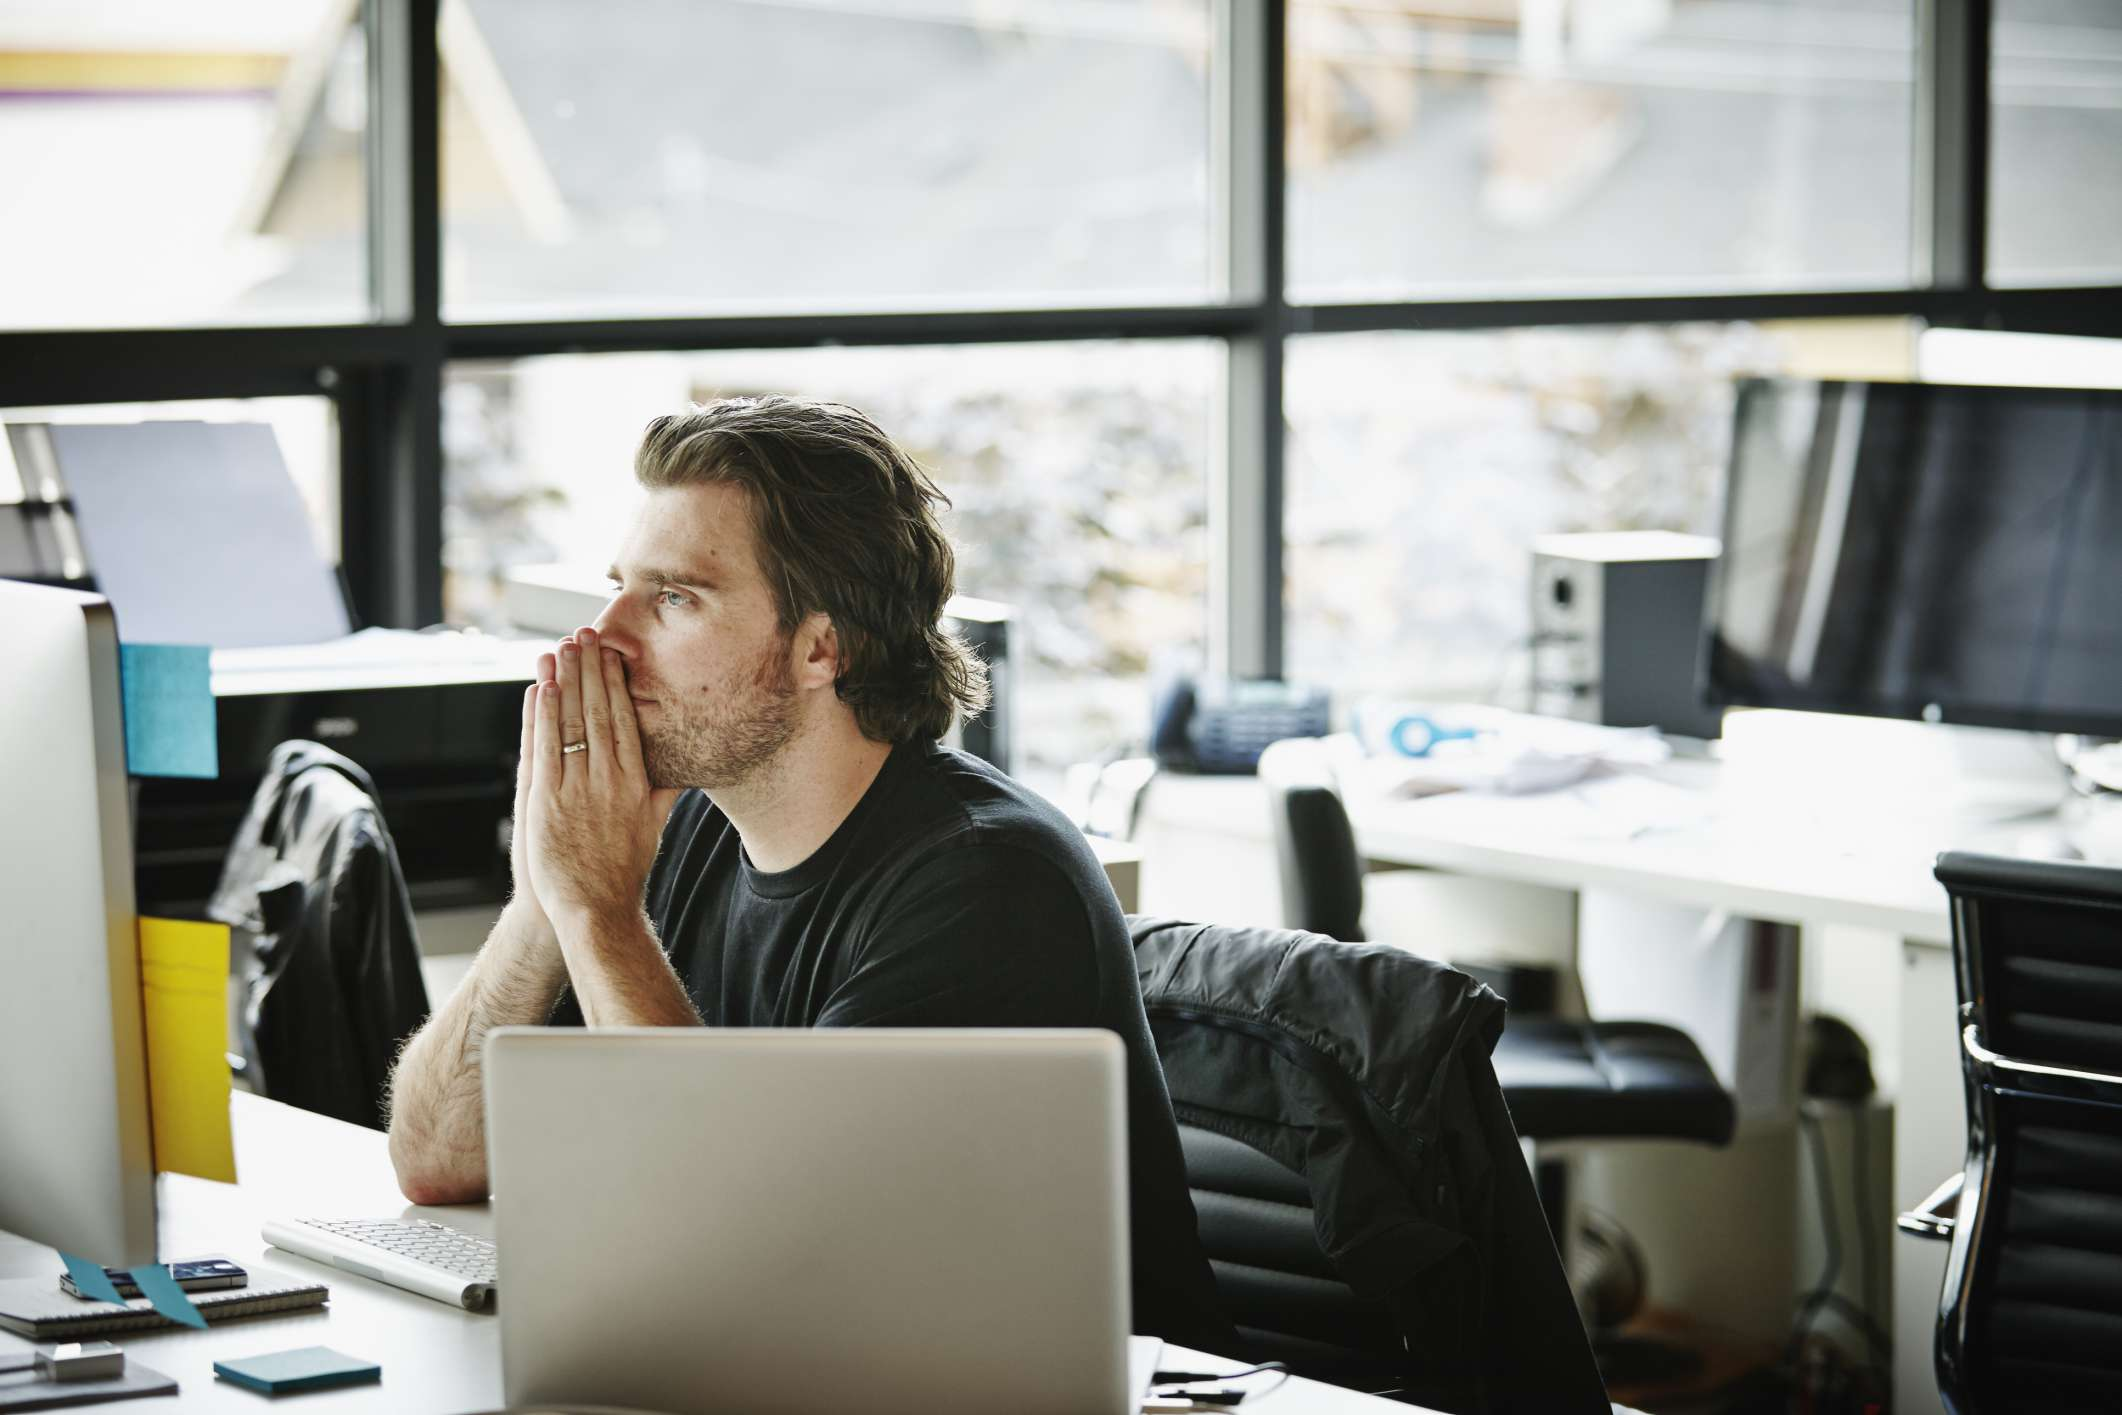 Man sitting at computer with hands on head